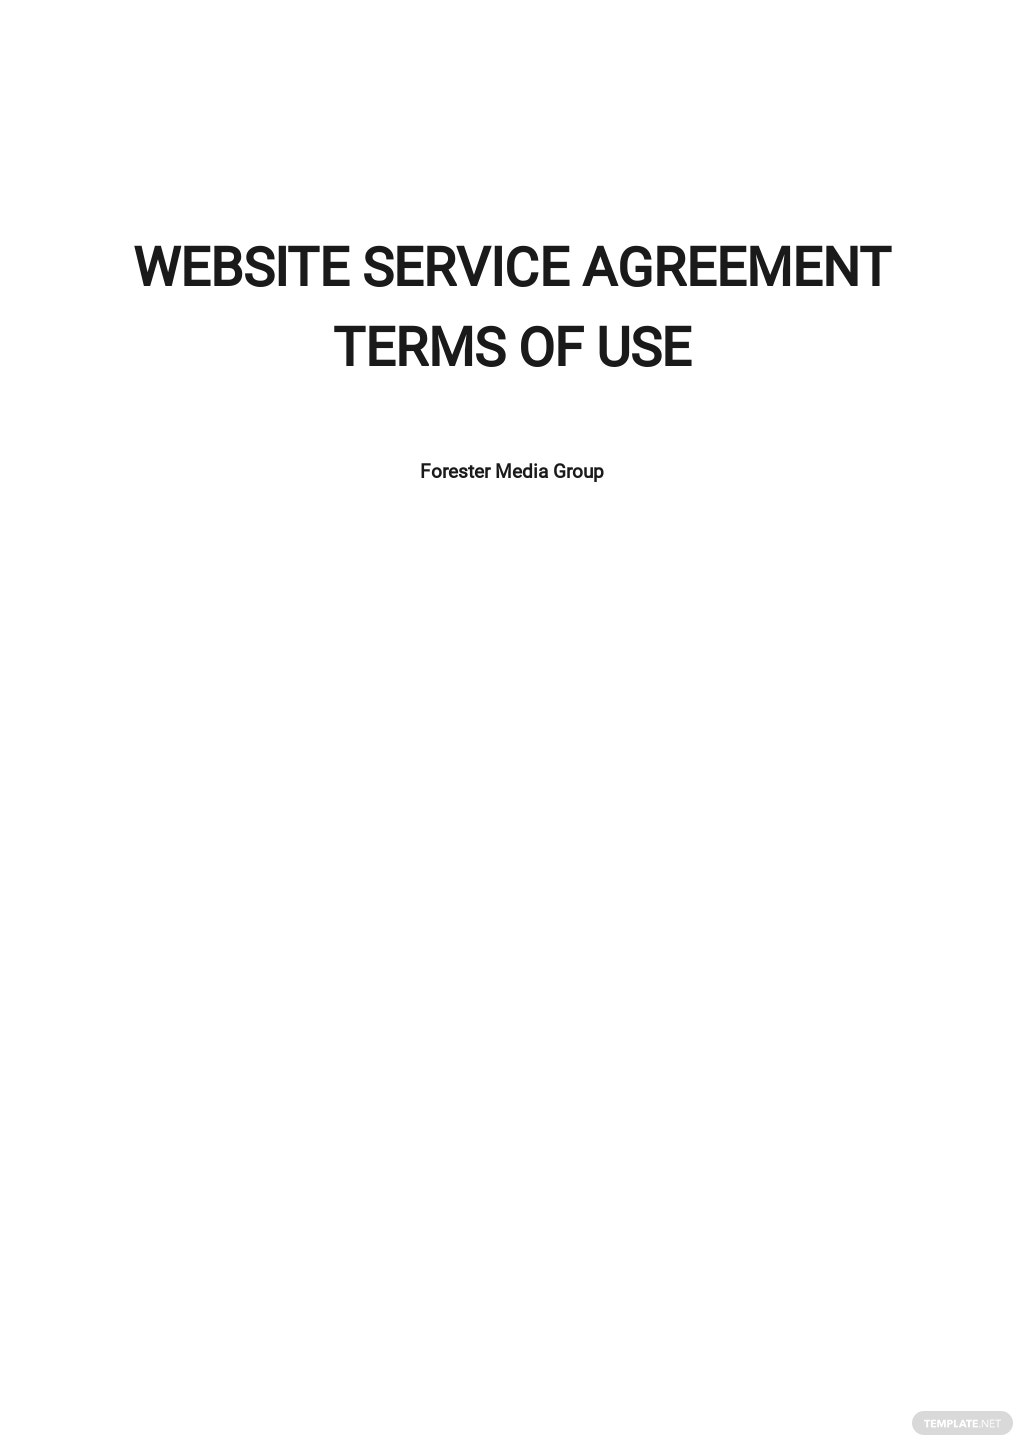 Website Service Agreement Terms of Use Template.jpe